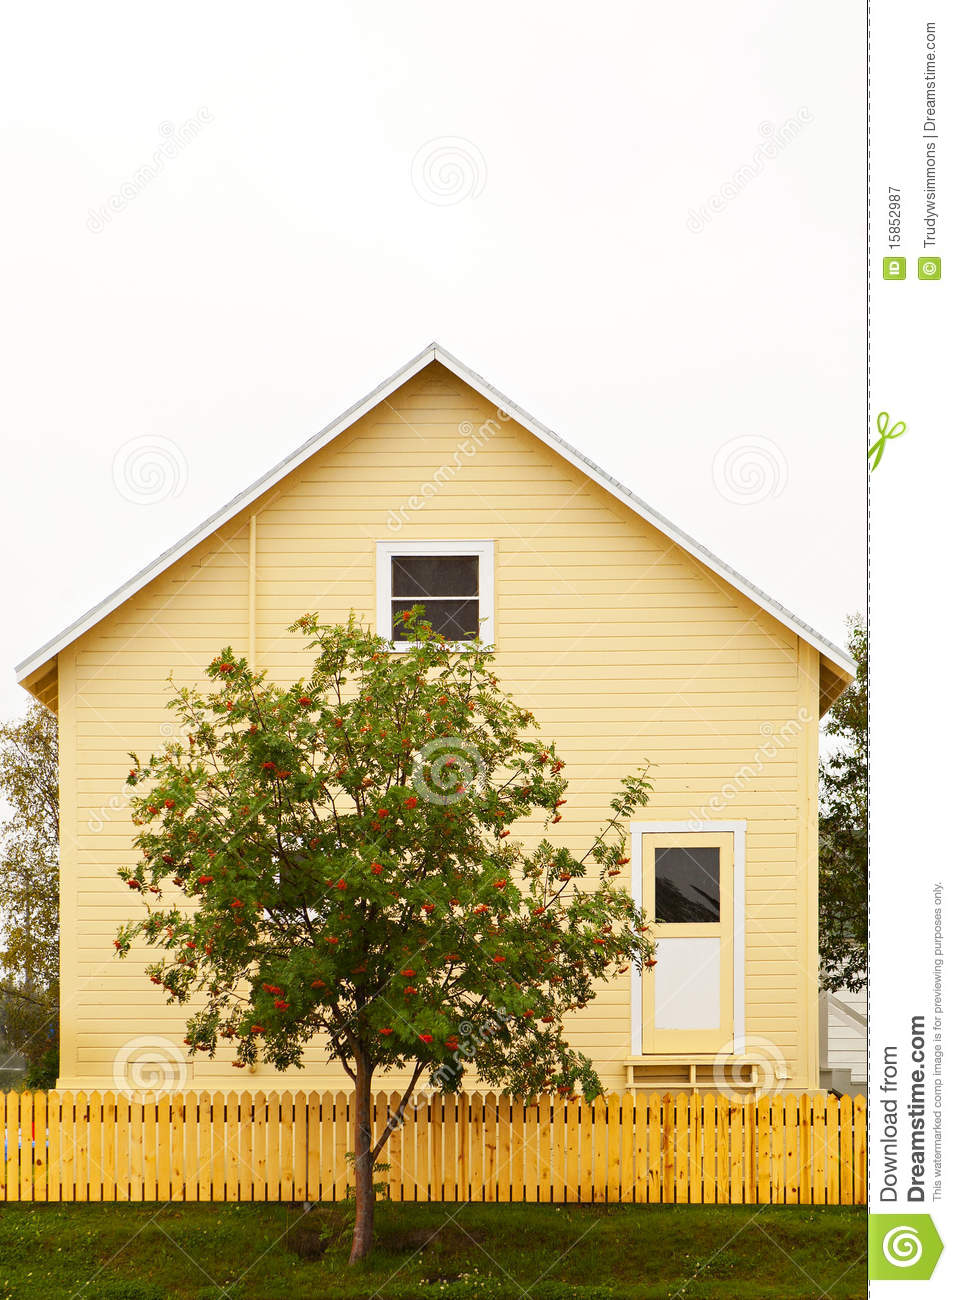 Yellow house and fence with red and green tree stock image for Yellow and red house